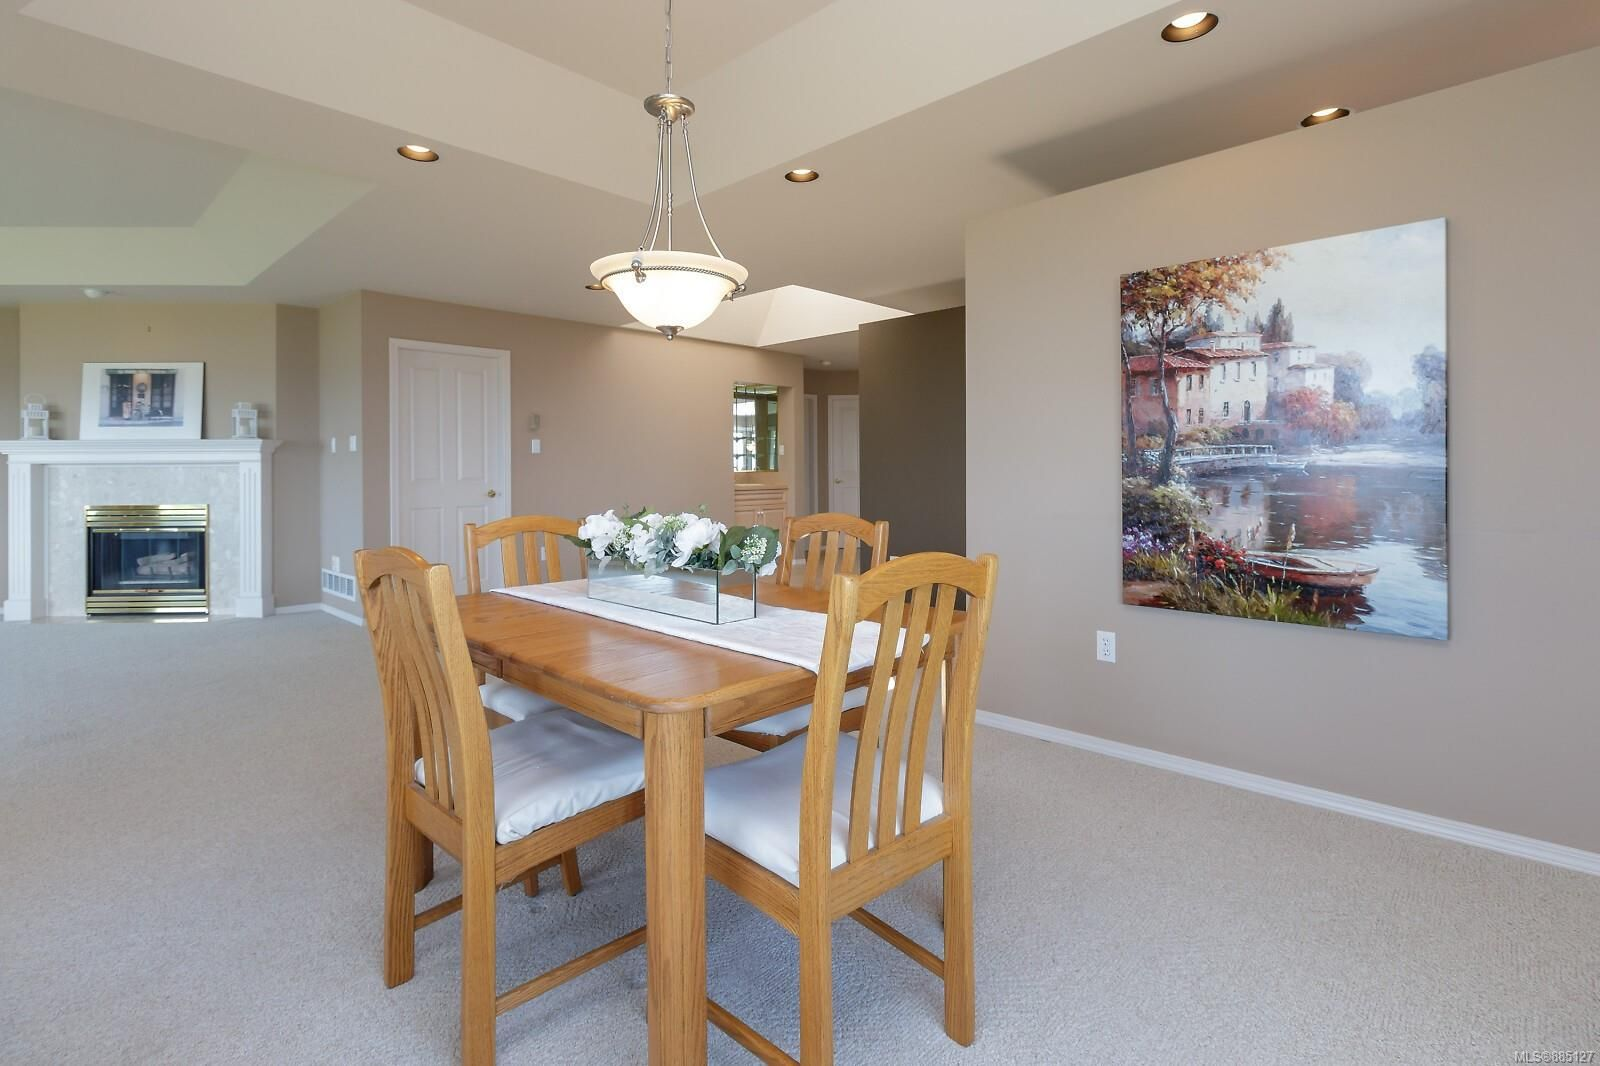 Photo 32: Photos: 26 529 Johnstone Rd in : PQ French Creek Row/Townhouse for sale (Parksville/Qualicum)  : MLS®# 885127